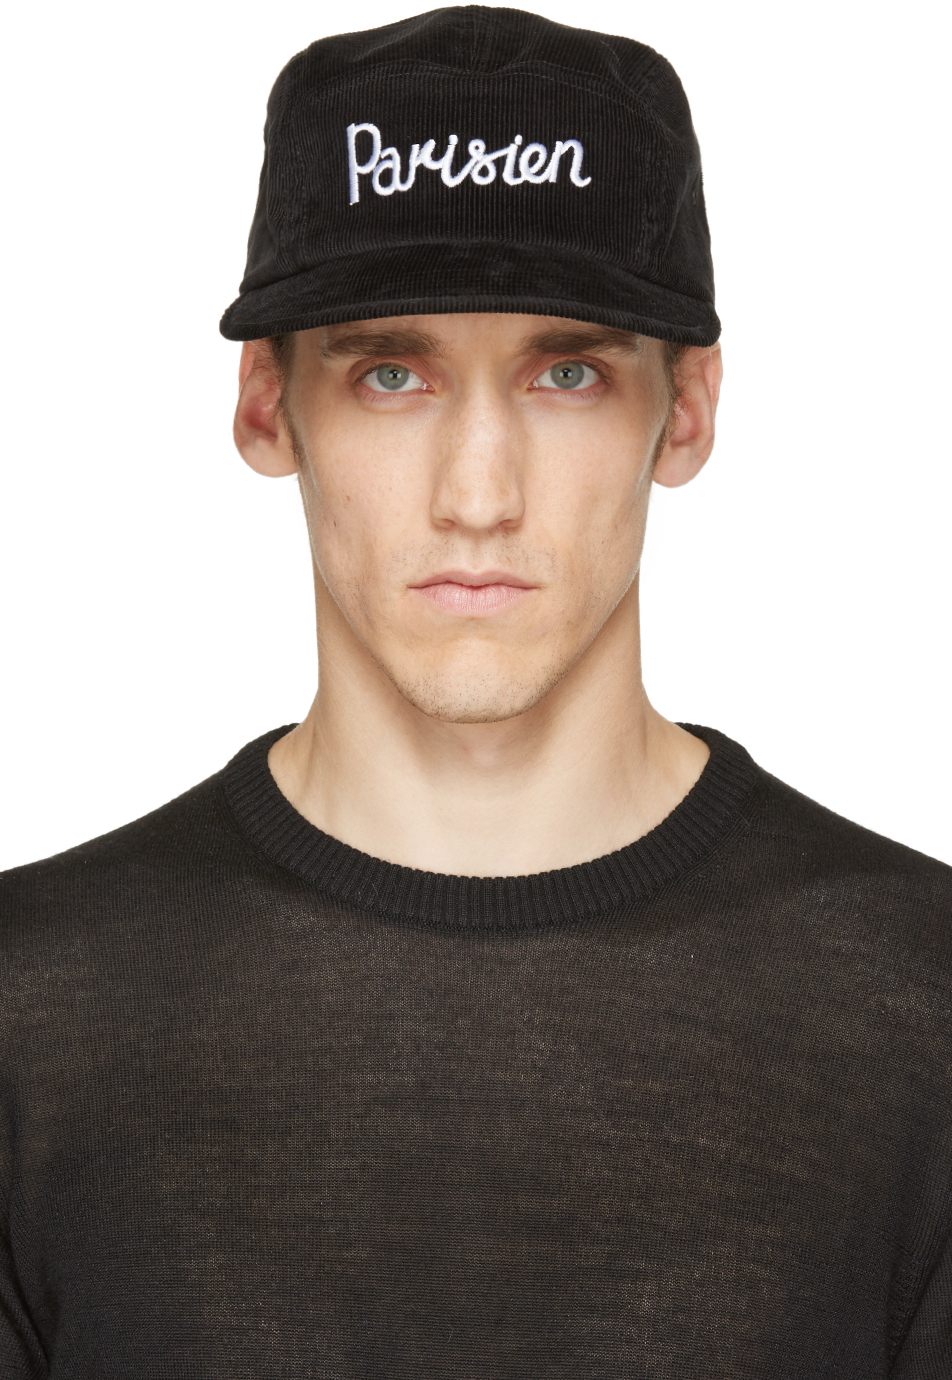 Lyst - Maison Kitsuné Black Corduroy Parisien Cap in Black for Men bf6a0383f37